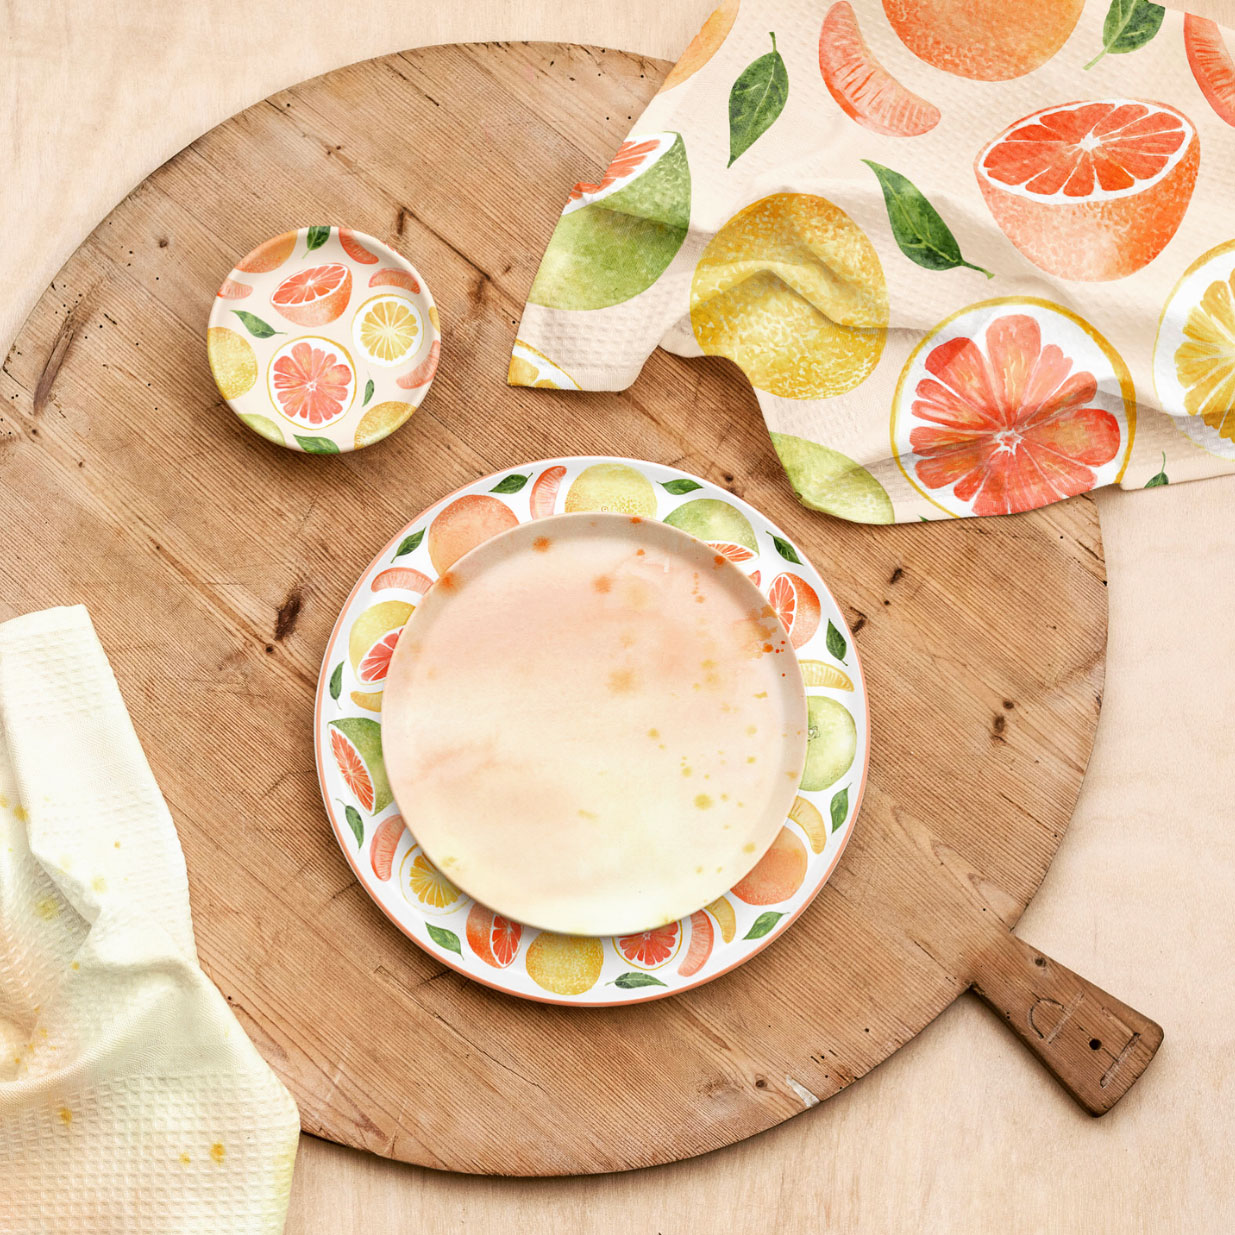 Grapefruit Plates and Napkins